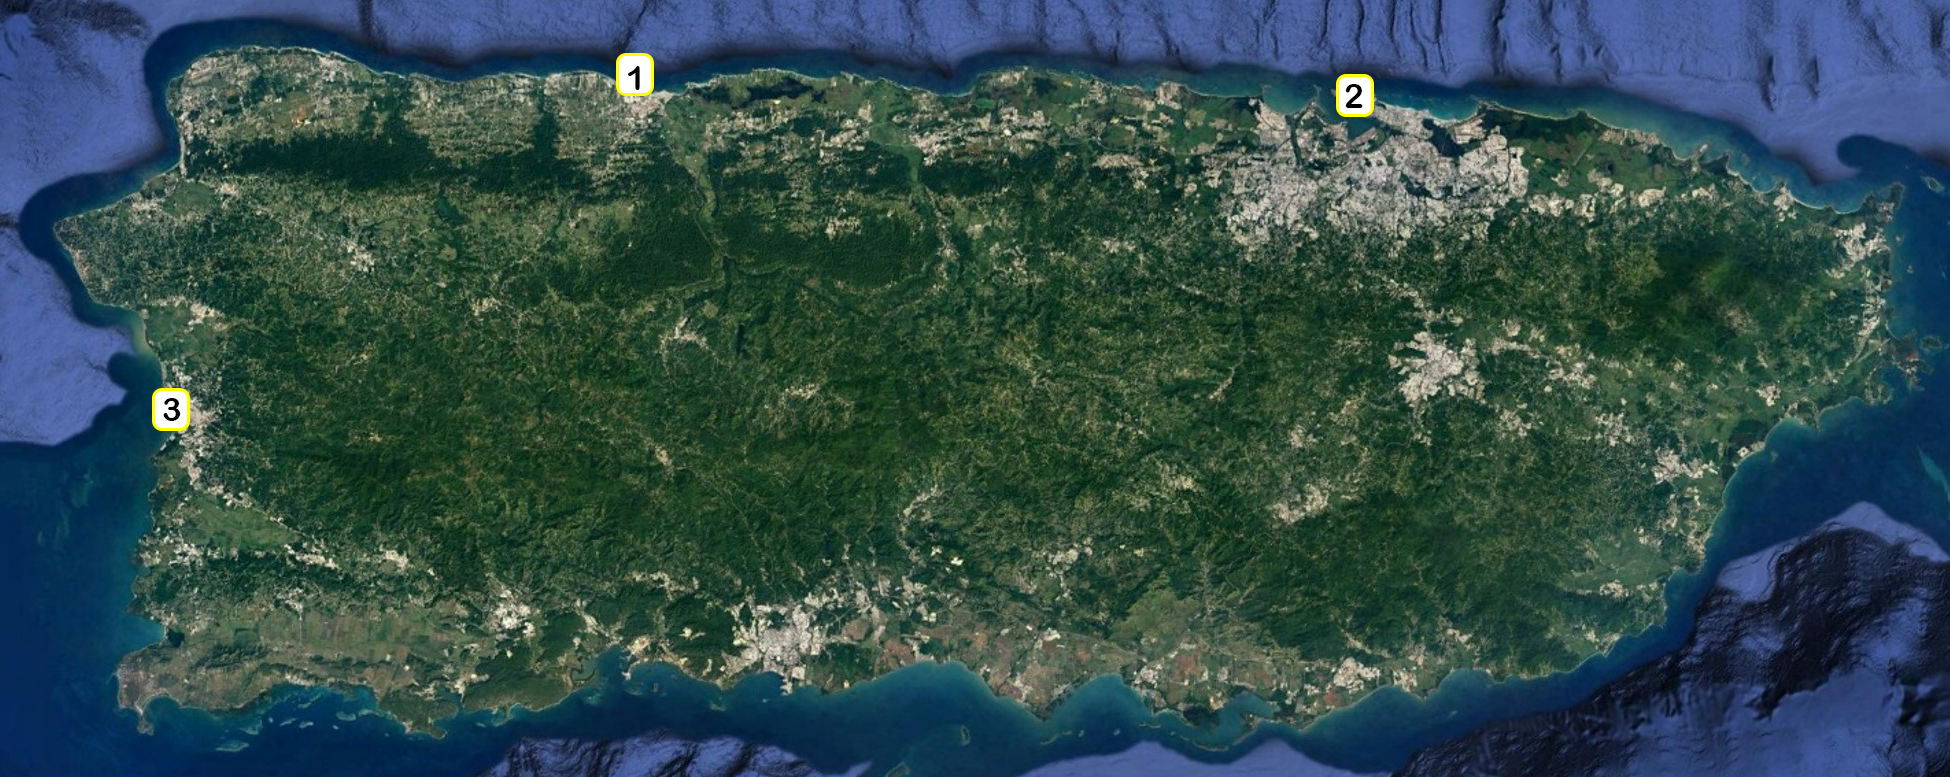 Map of Puerto Rico with numbered location of harbors